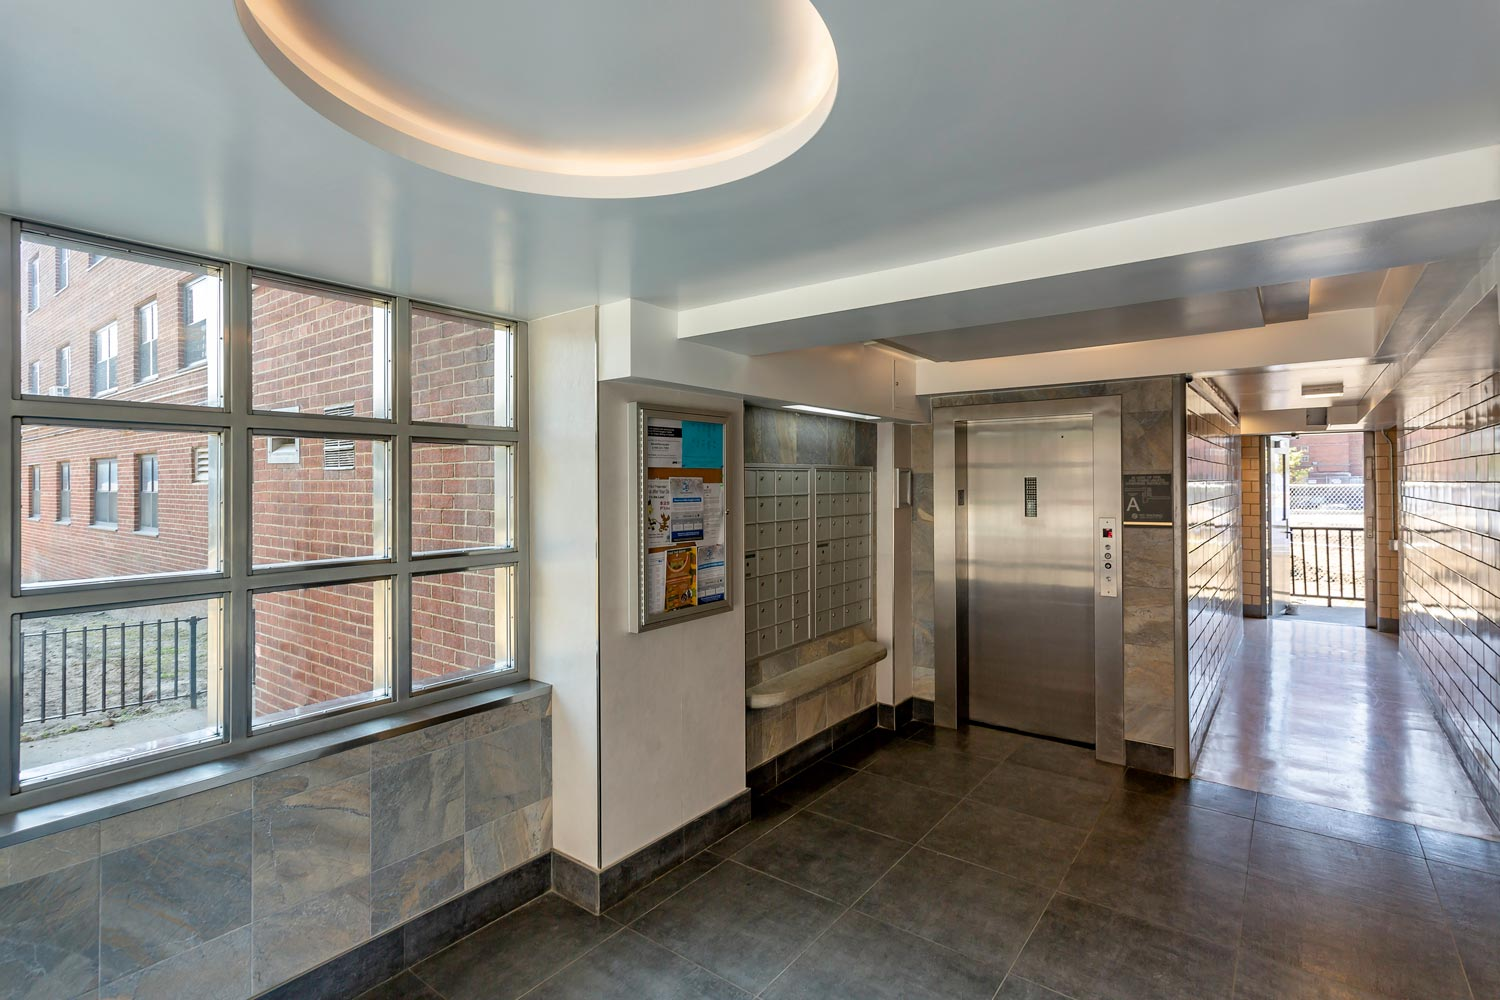 OCV introduced new finishes and high efficiency lighting into public halls at Ocean Bay-Bayside Apartments.